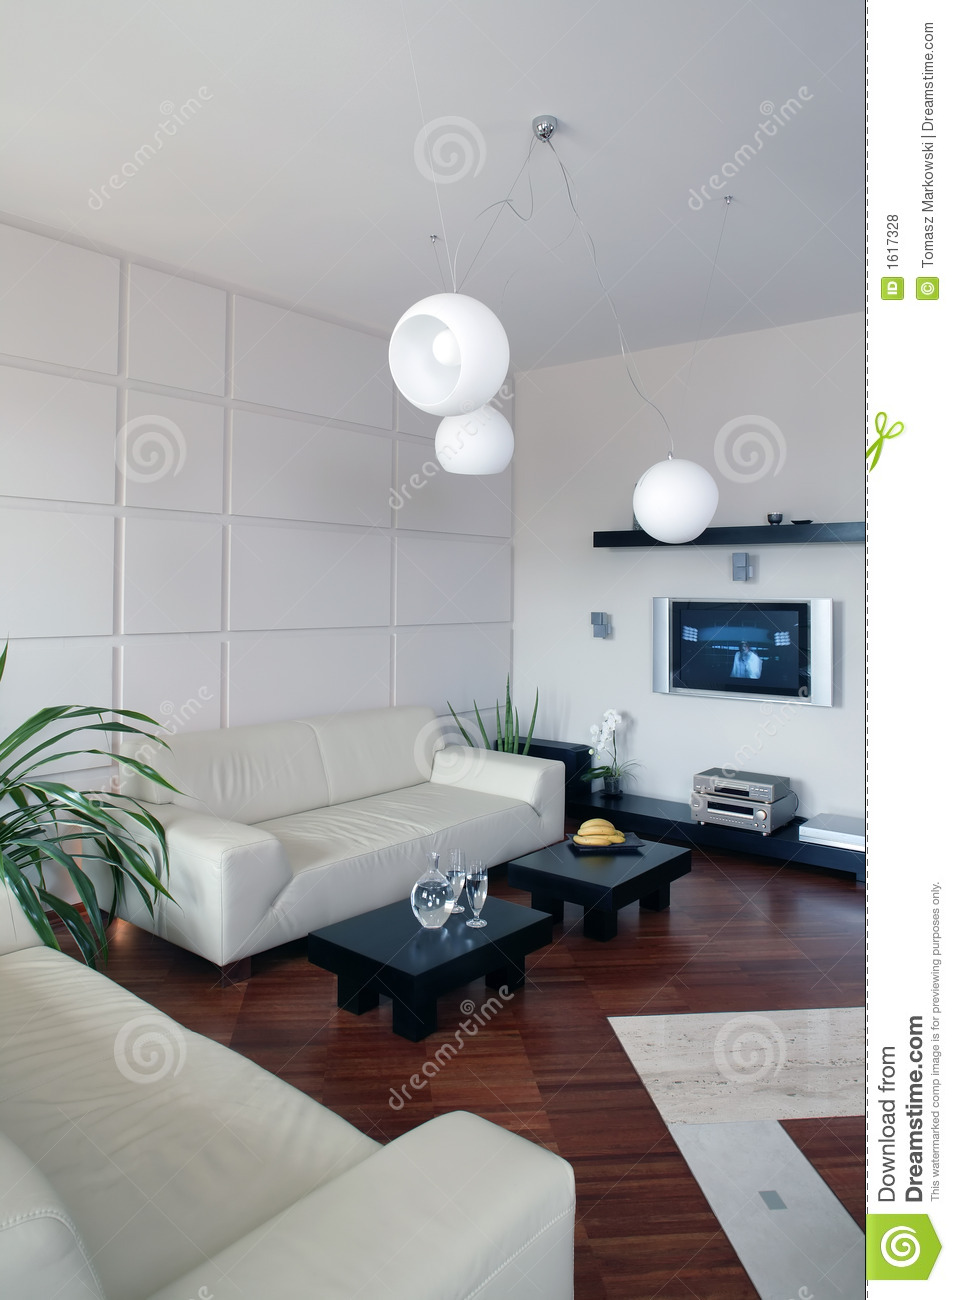 Modern Living Room Vertical Royalty Free Stock Photos